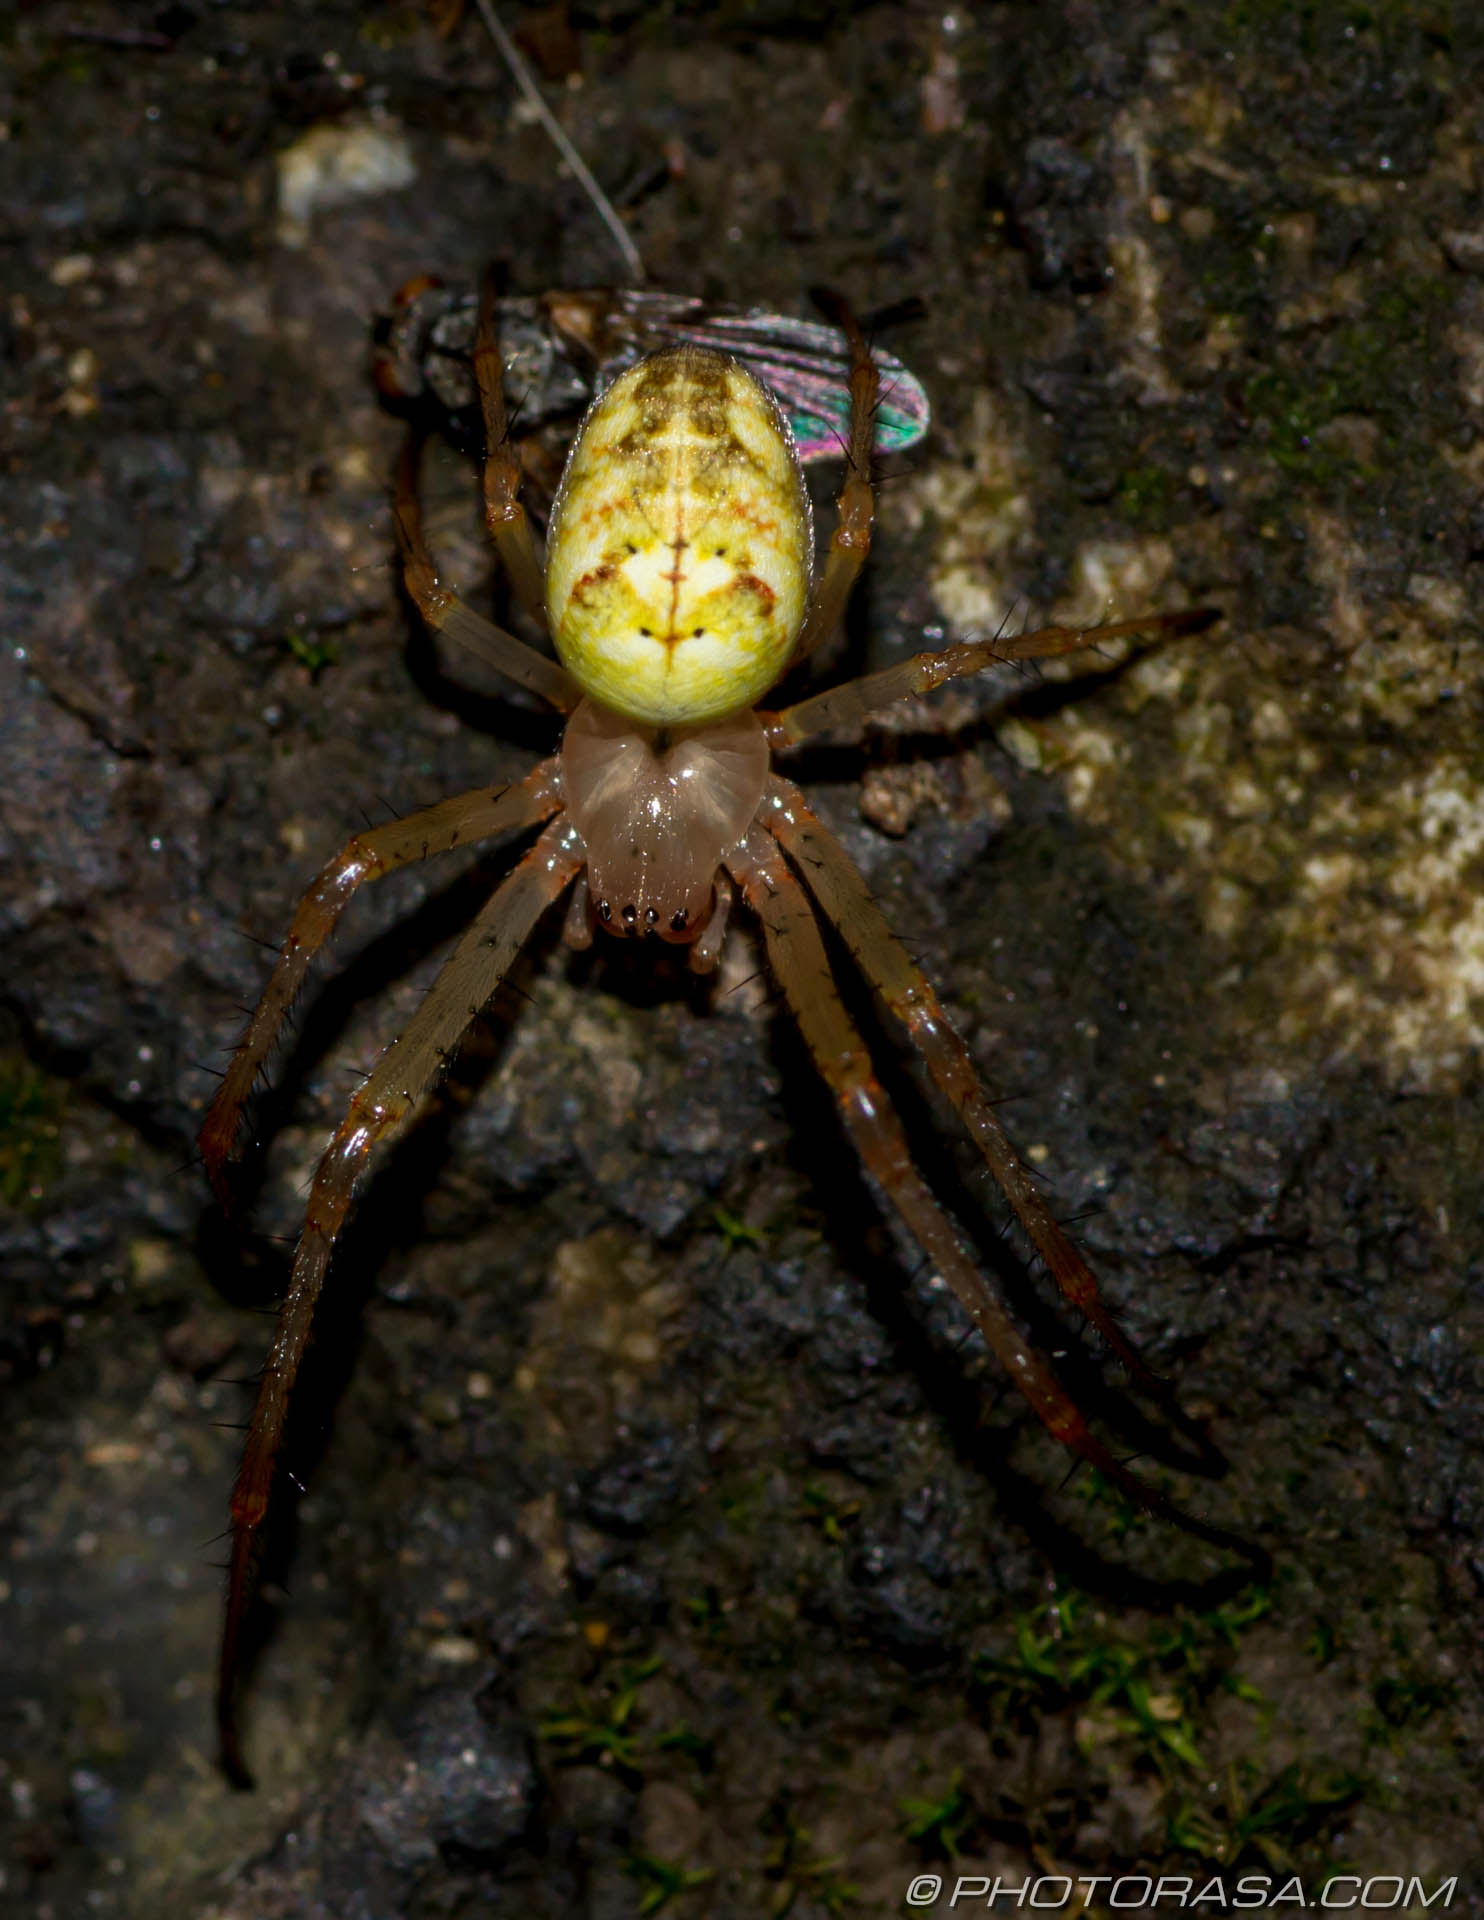 http://photorasa.com/common-orb-weaver-spiders/uk-orb-spider/